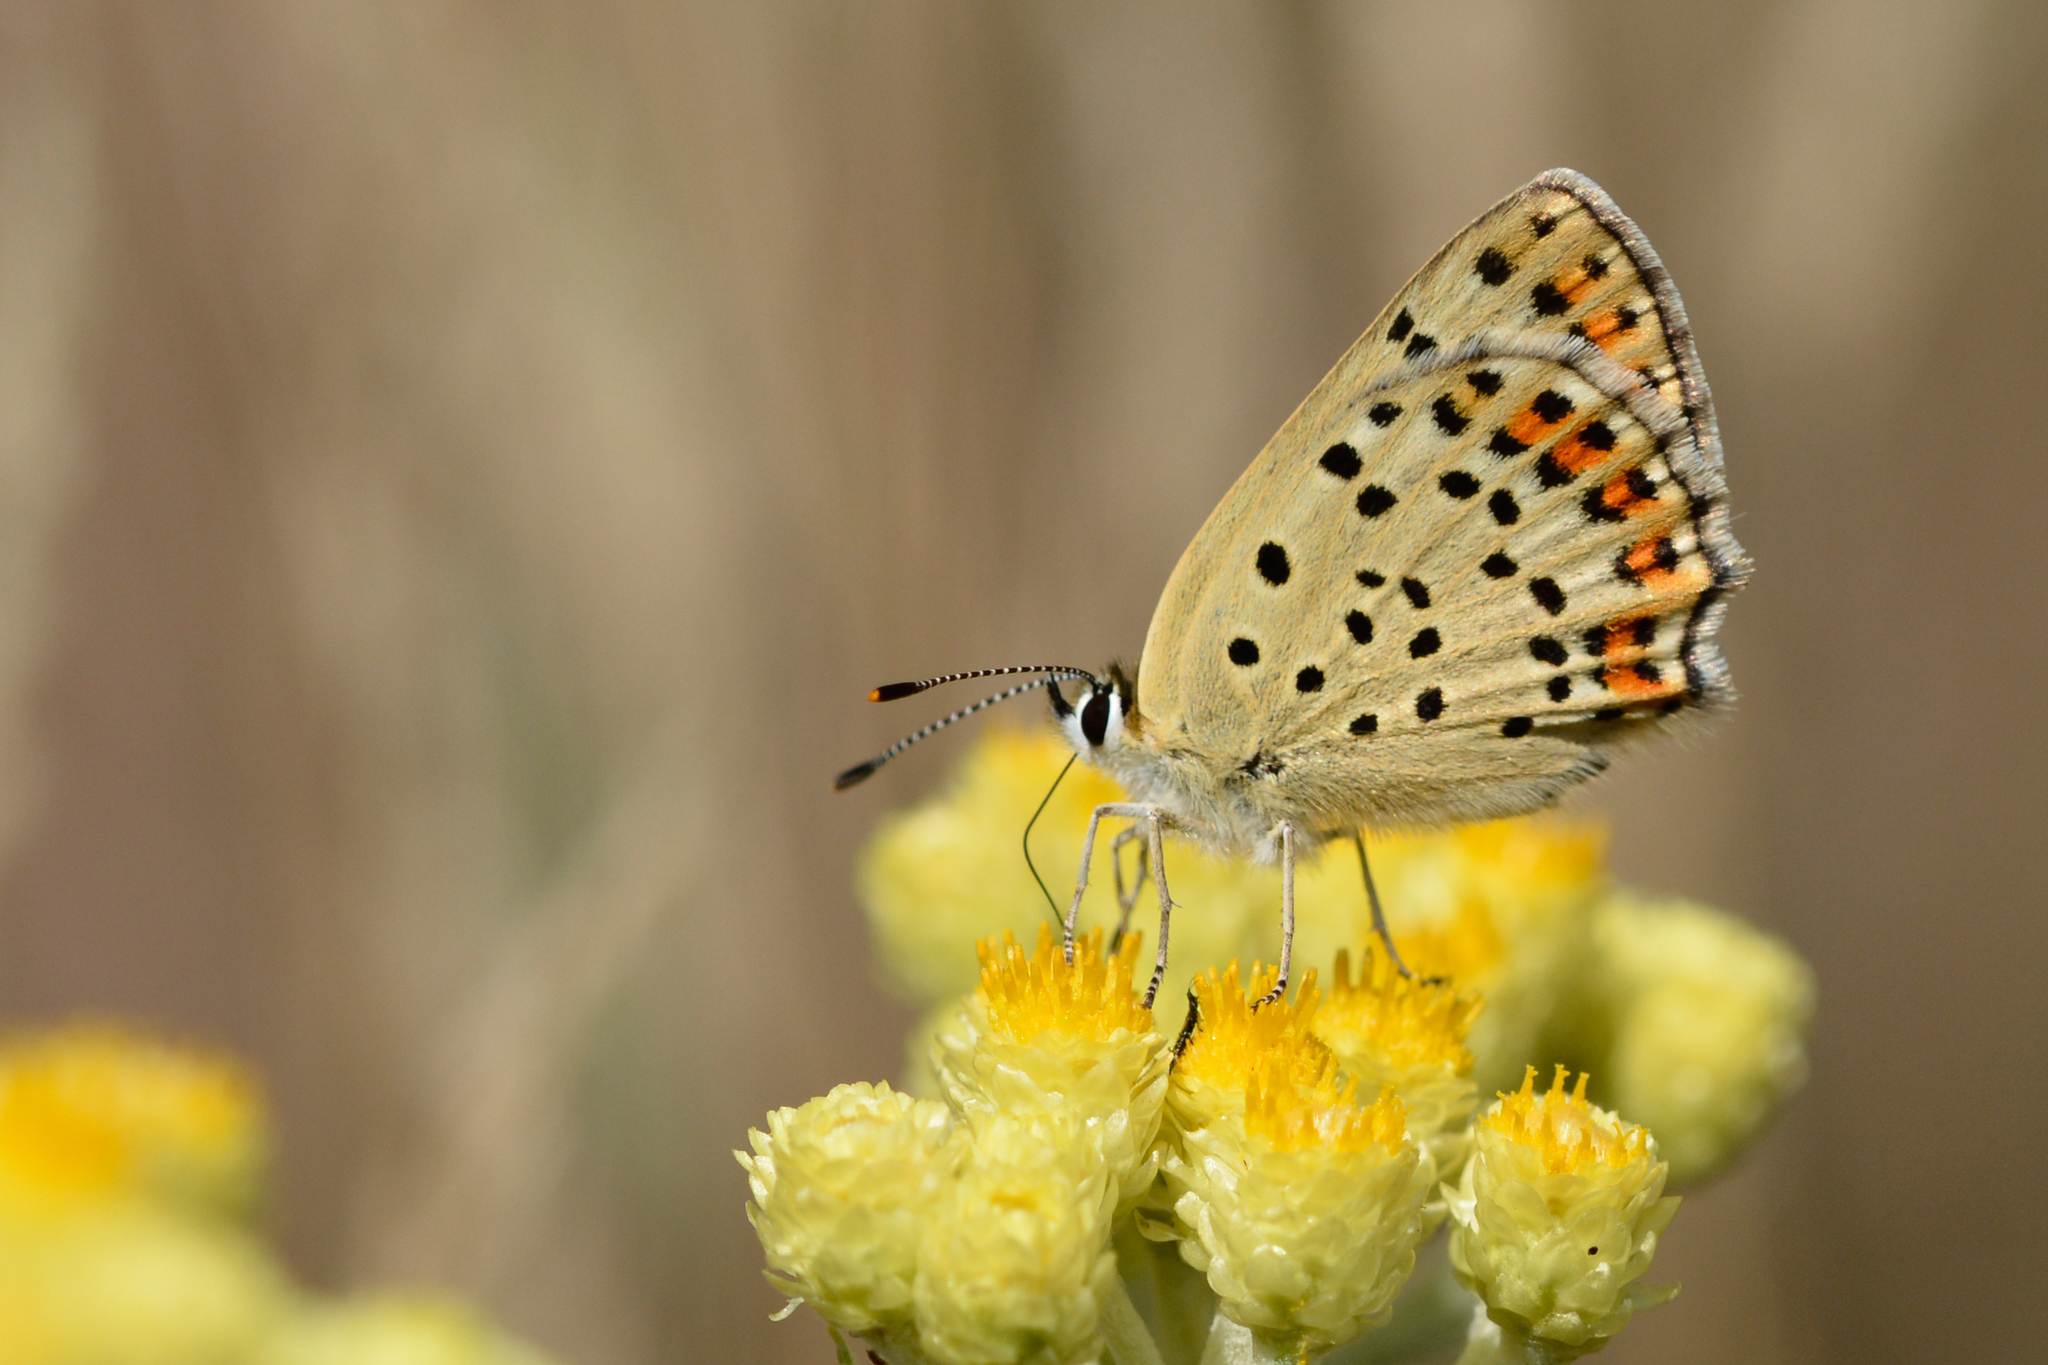 Nitrogen enrichment in host plants increases the mortality of common Lepidoptera species